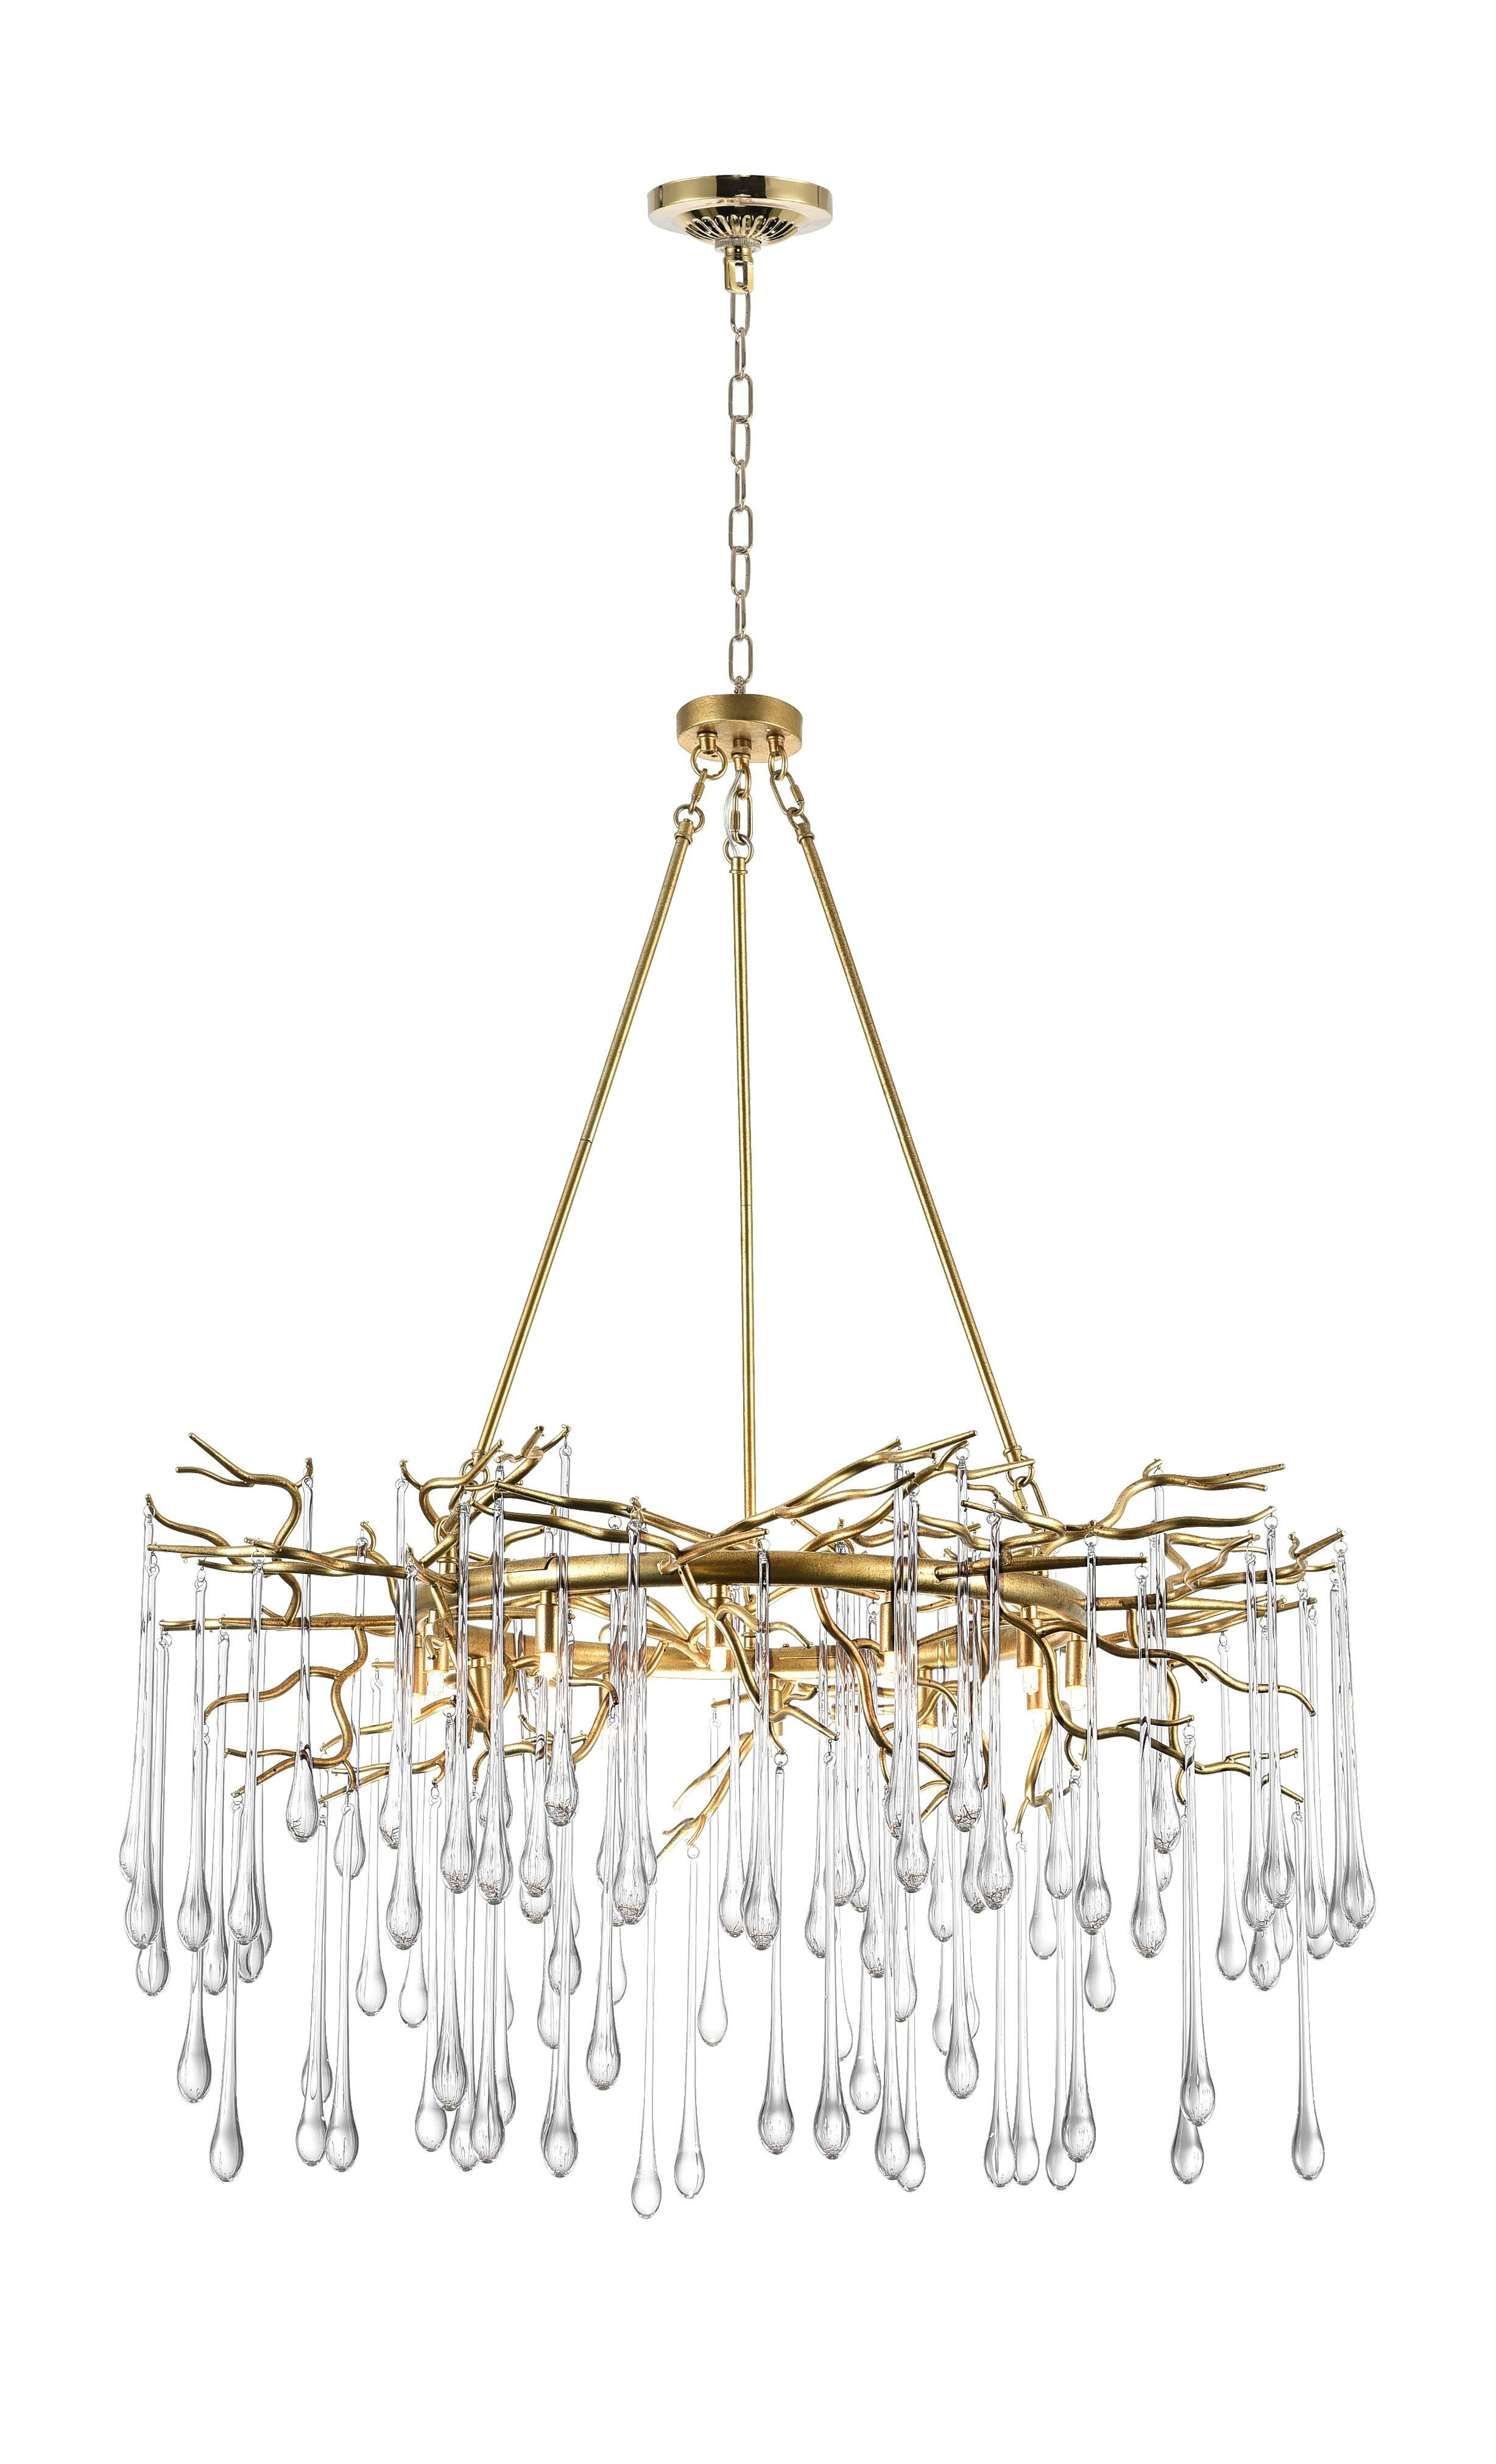 Mercer41 Lehmann 12 Light Unique Statement Wagon Wheel Chandelier Wayfair